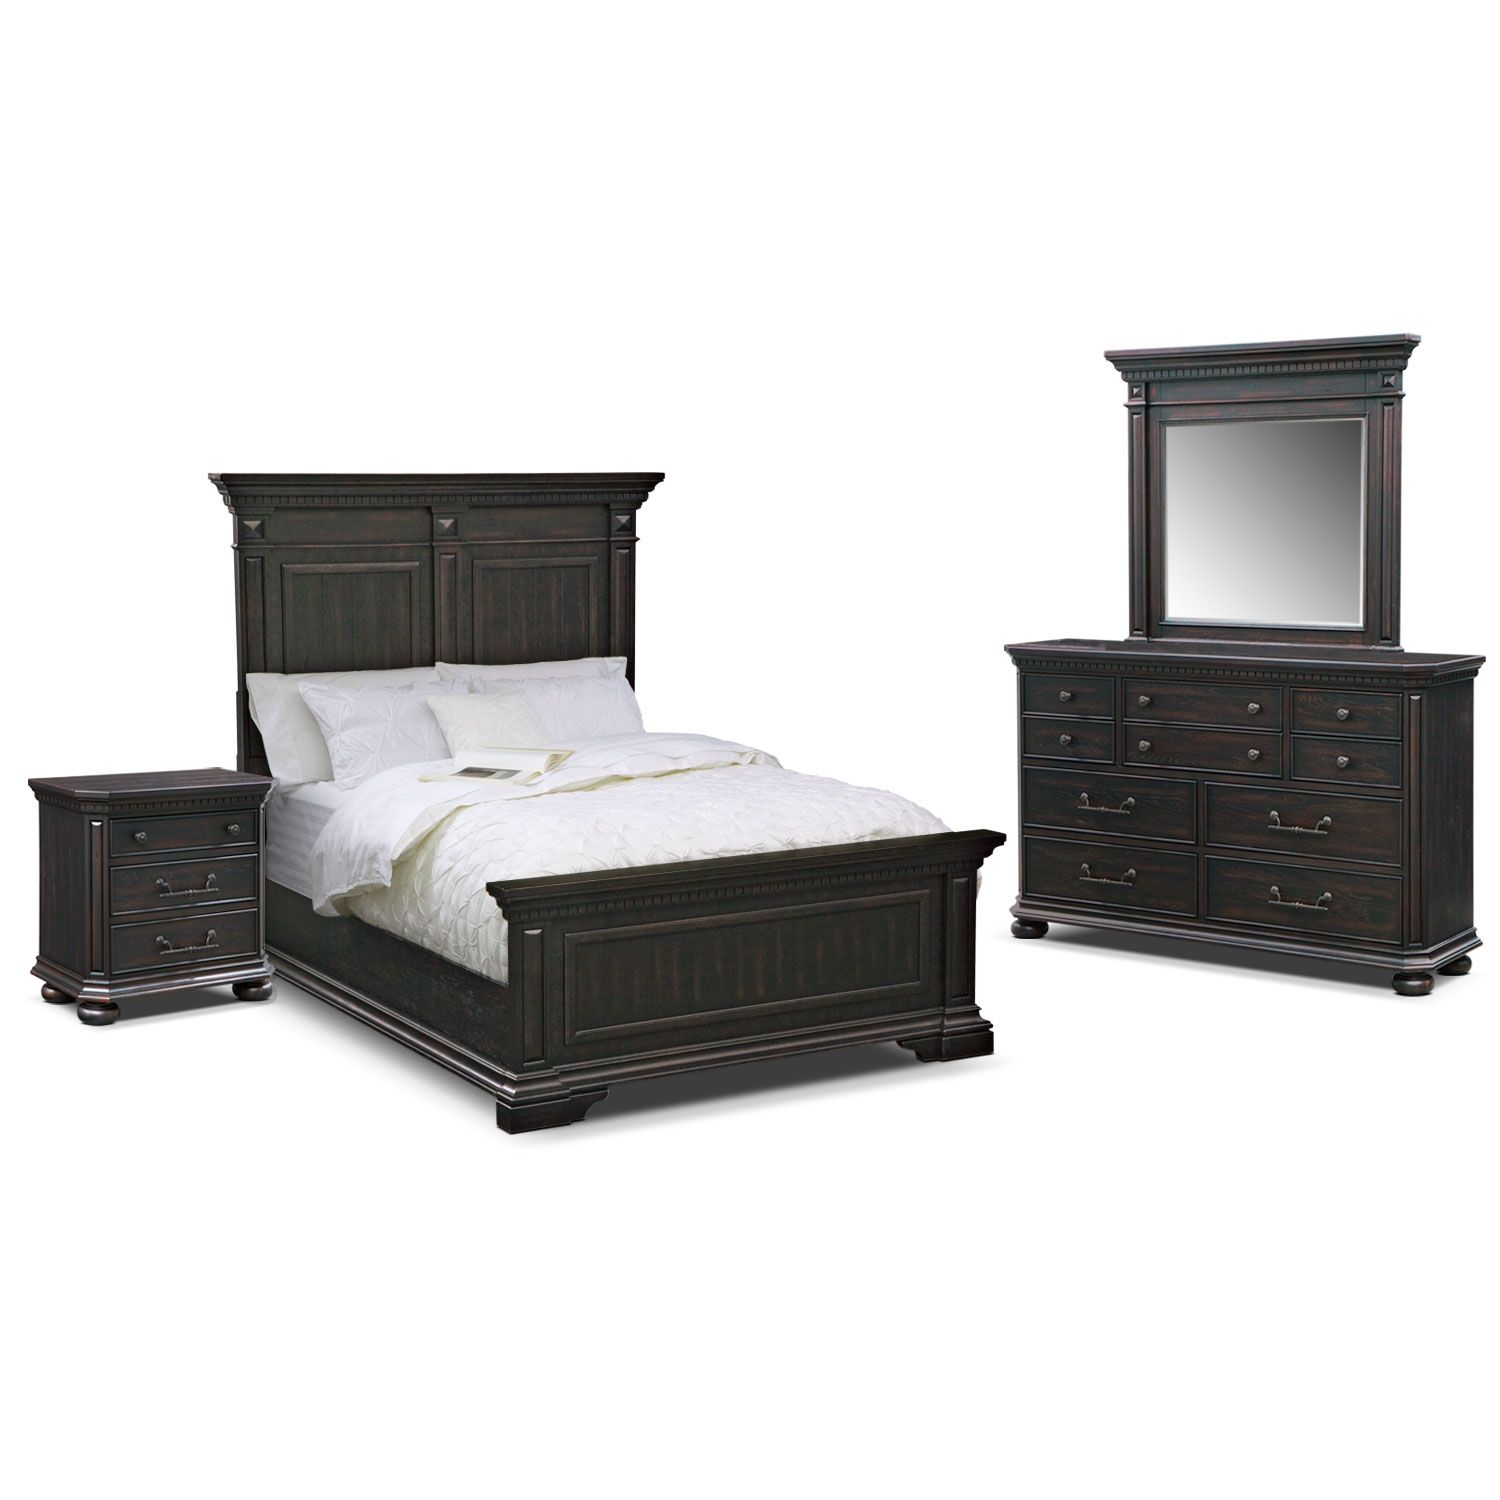 Bedroom Furniture Newcastle 6 Pc King Bedroom Beds